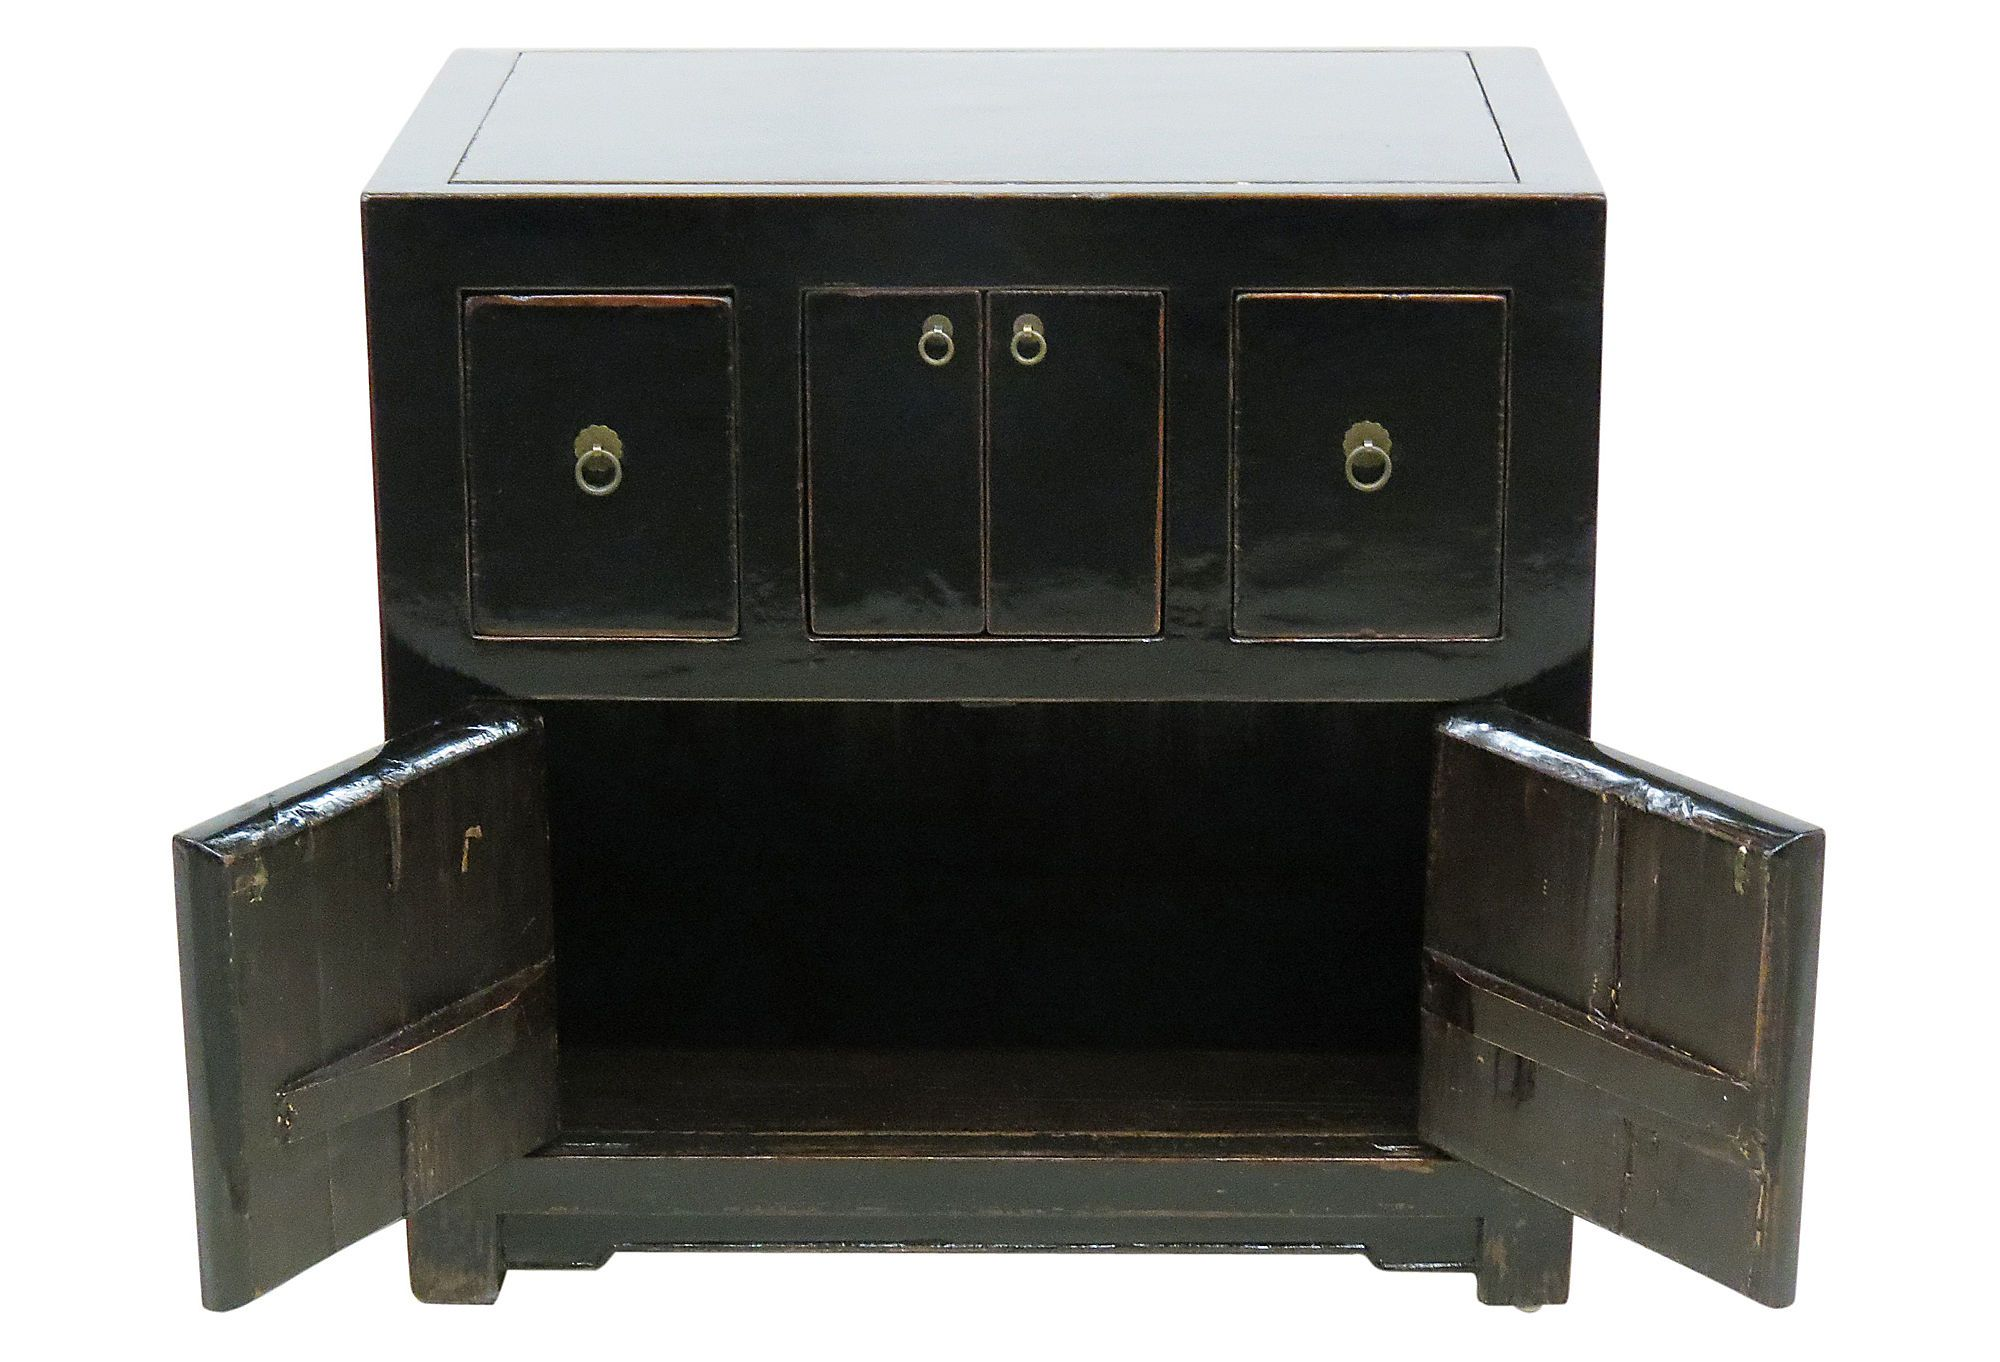 This chest was meticulously handcrafted of elm wood reclaimed from furniture that dates back to China's Qing Dynasty, which came to an end with the 1911 revolution. The distinctive silhouette, carved details, and distressed finish speak to its heritage